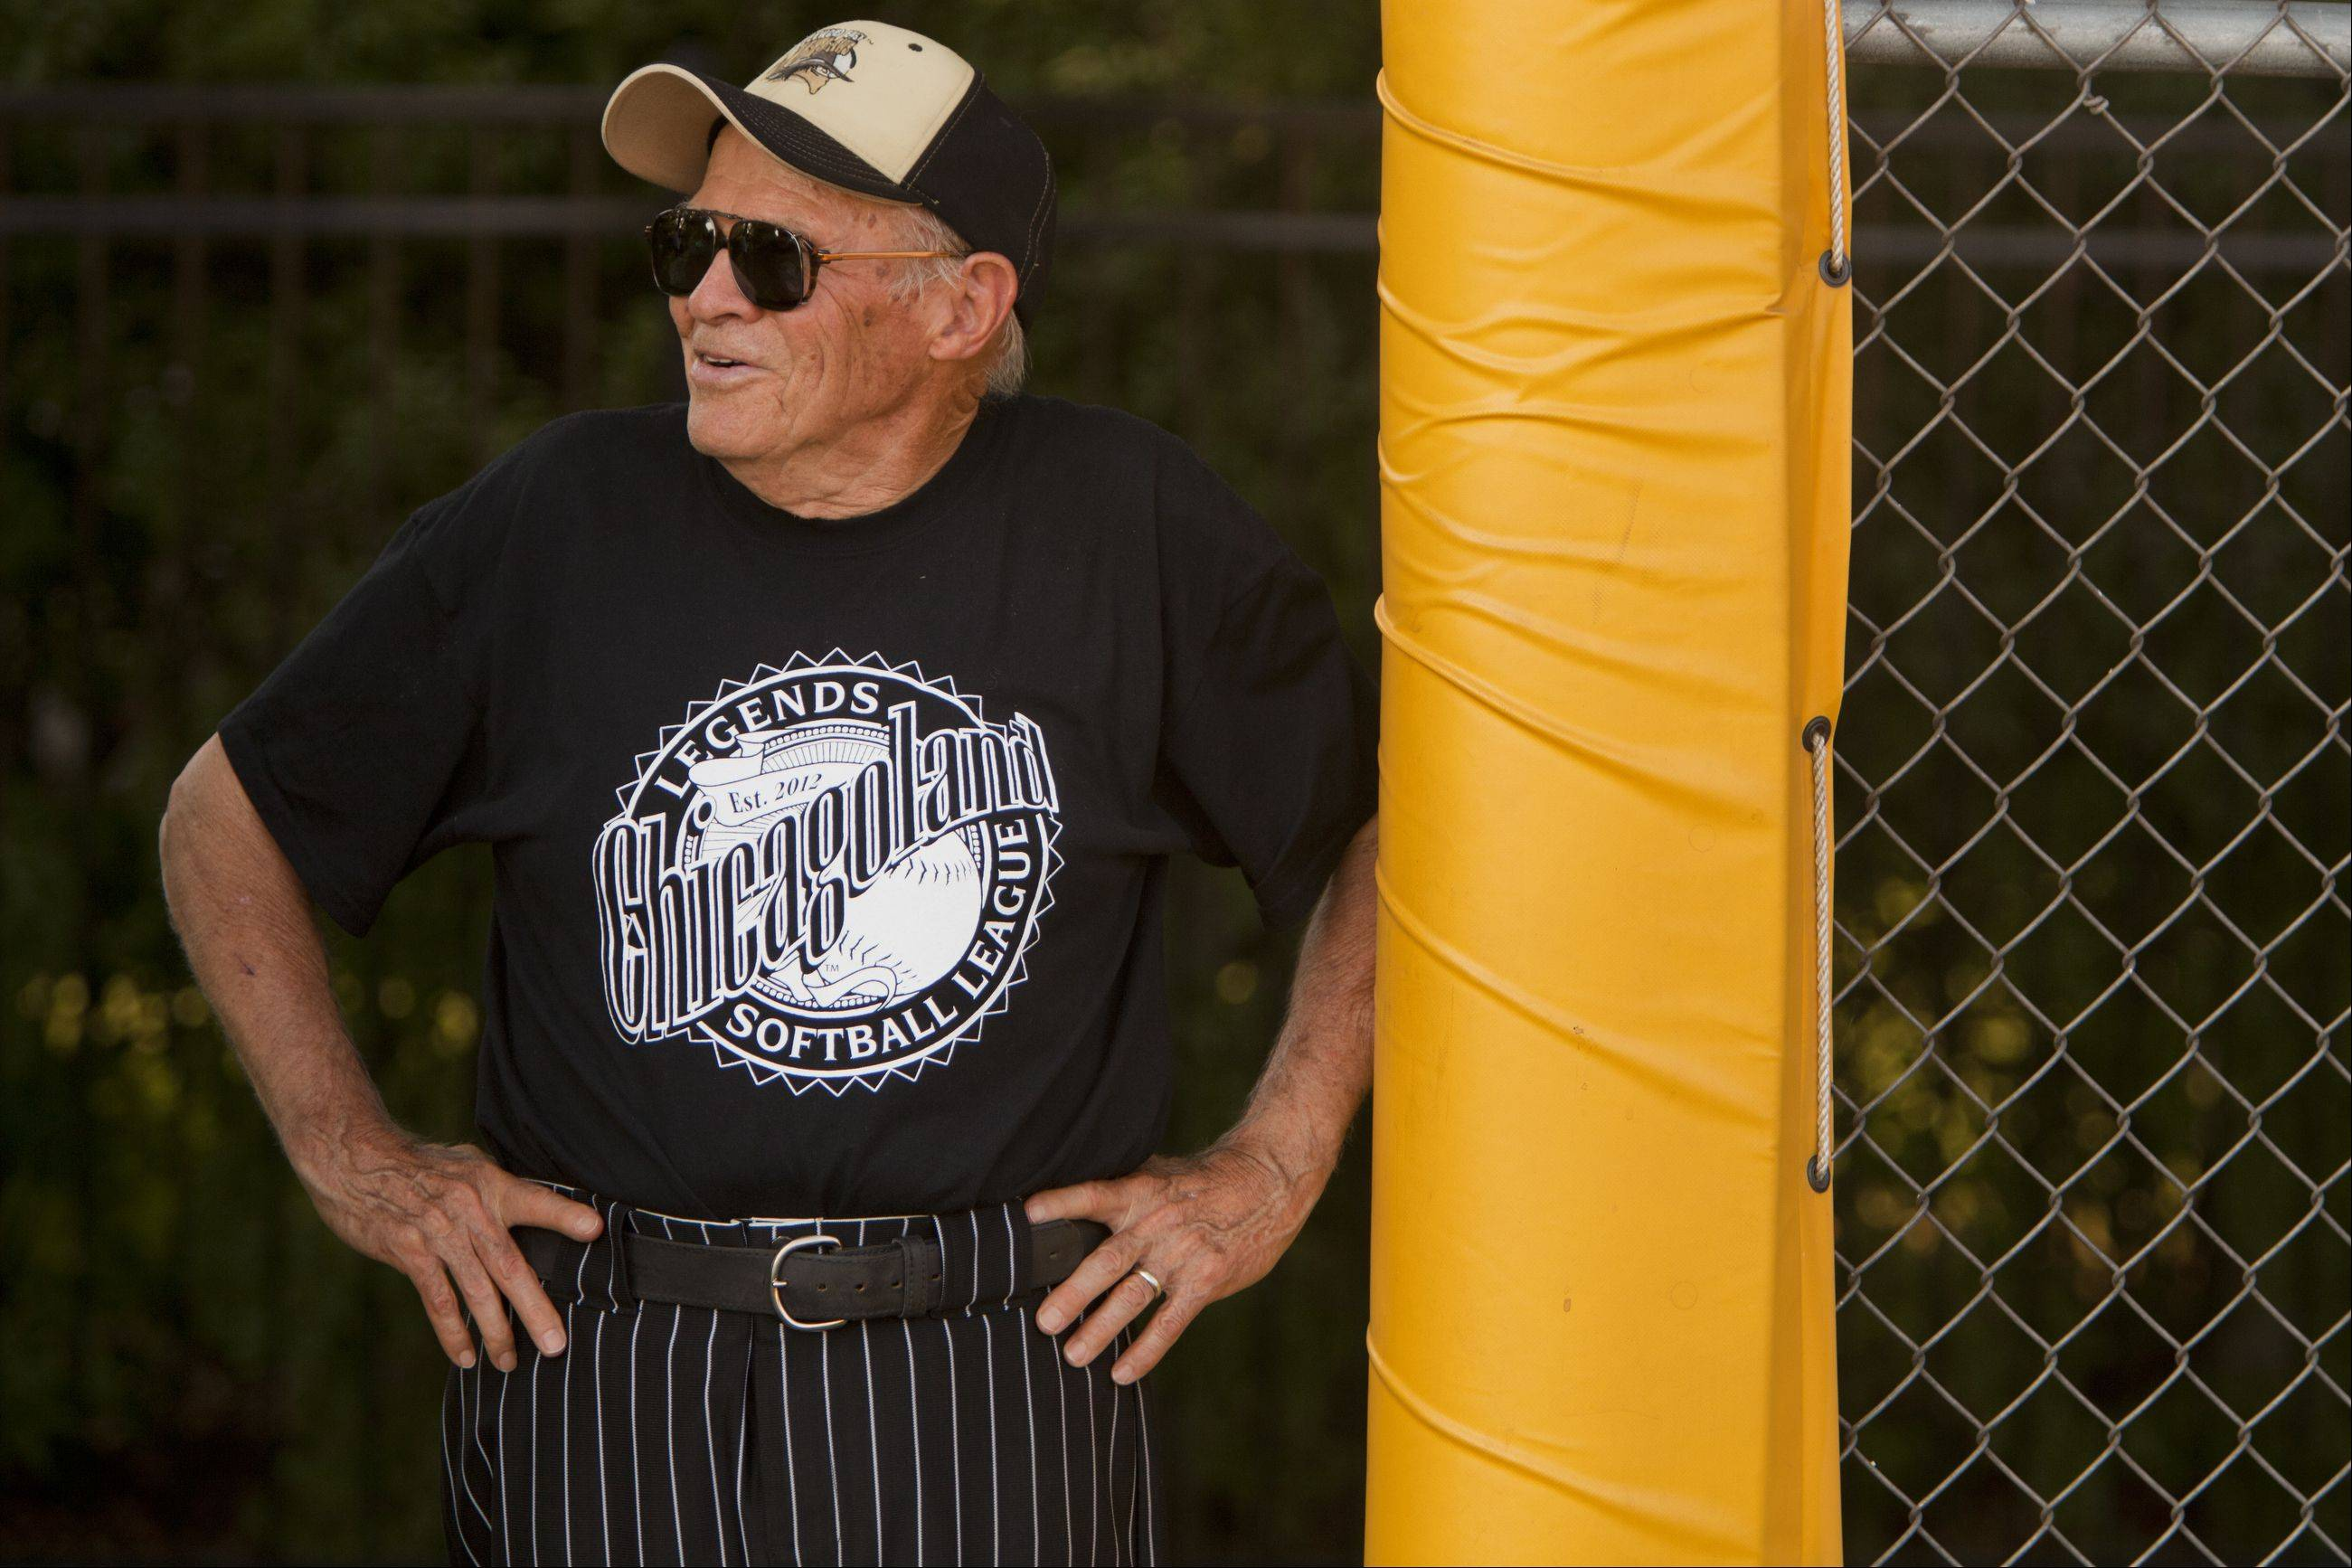 Ken Black, 82, the oldest member of the Chicagoland Legends Softball League stands along the fence before his first playoff game of the 2012 season.